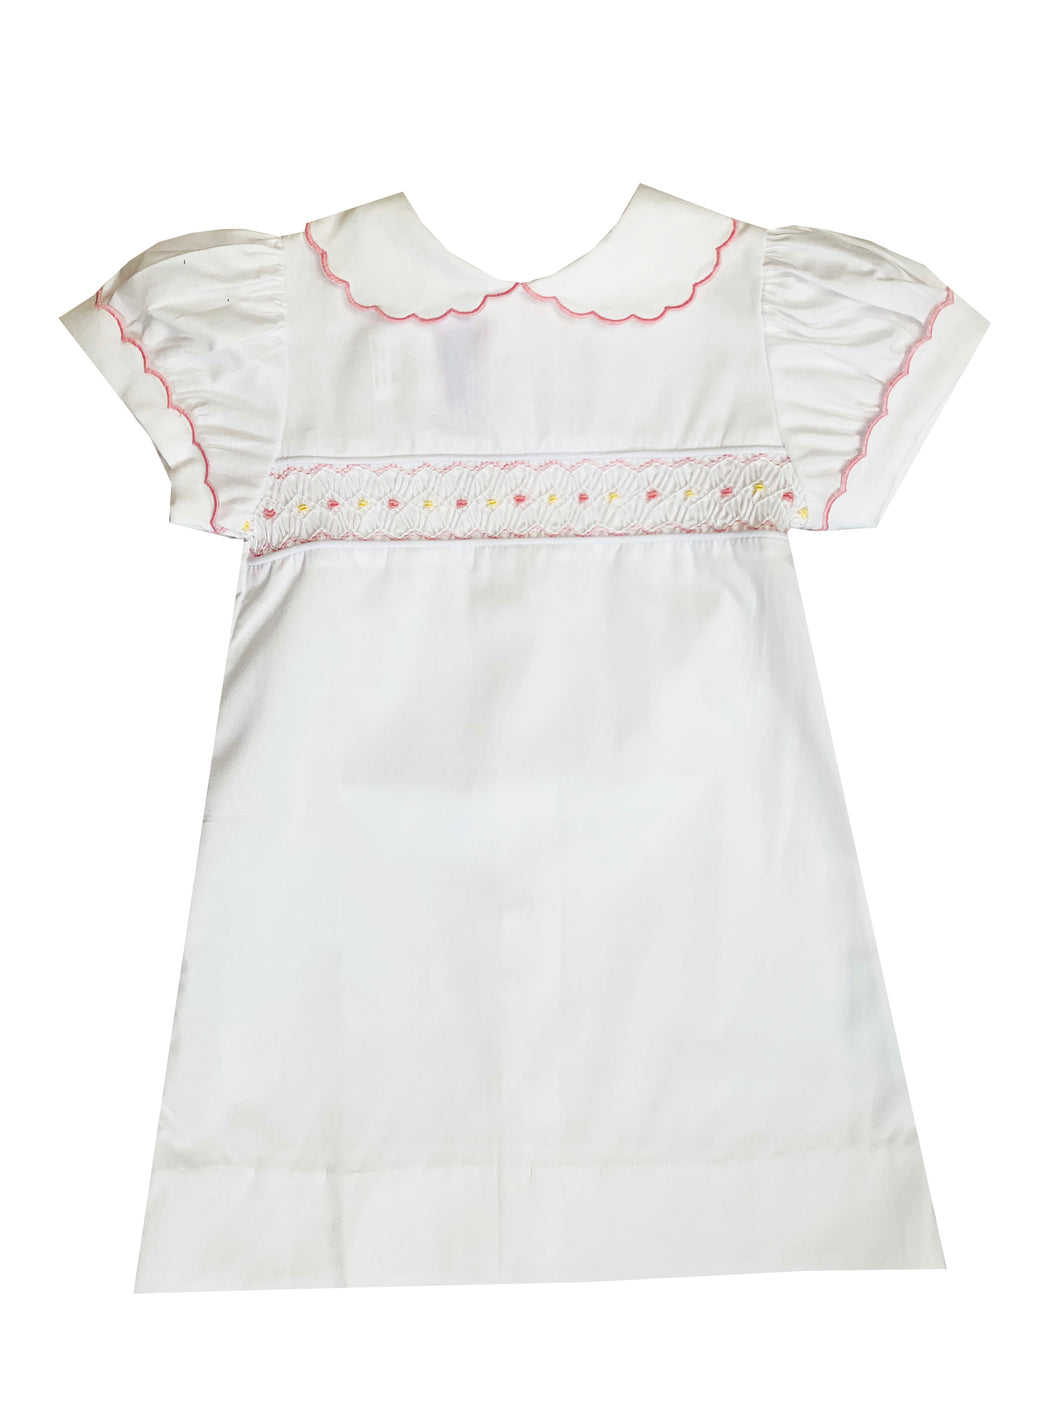 Lullaby Set Angel Baby Daygown